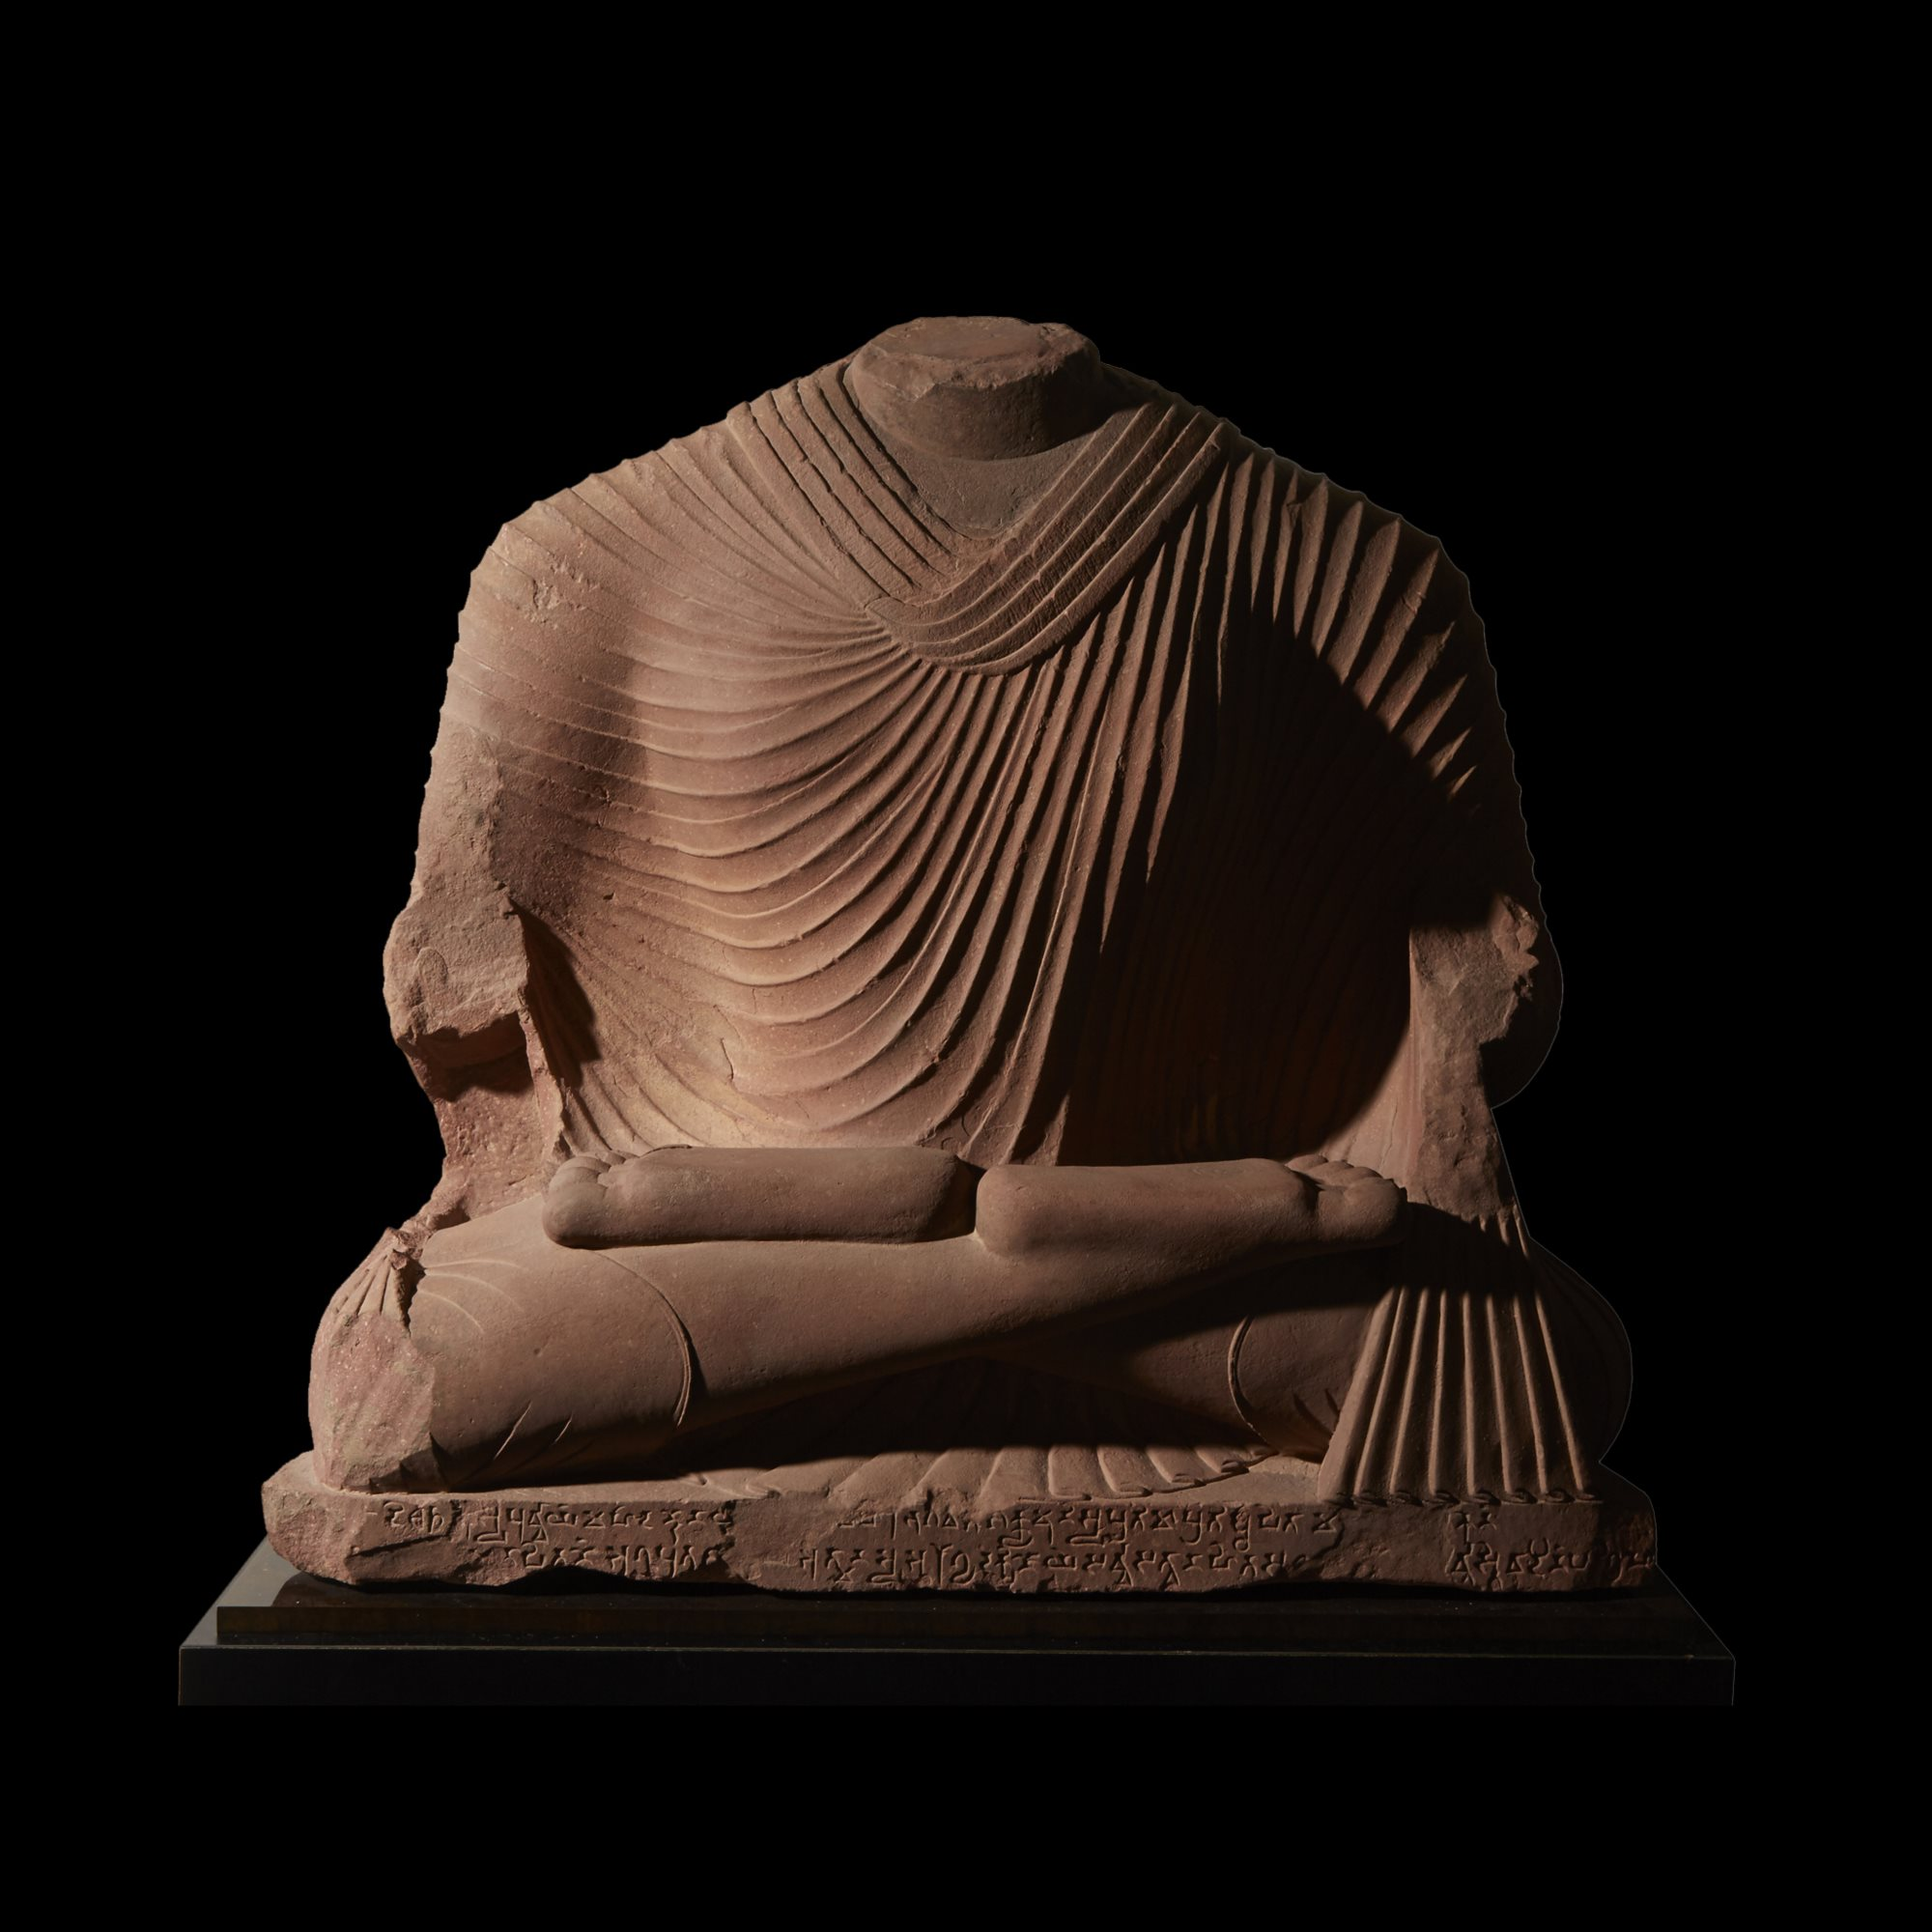 Over life-sized sculpture of Buddha, Mathura, Kushana period 1st - 2nd  century AD, Pink sandstone,  H: 37, W: 40 in. (mounted), Estimate: $30,000-50,000. Offered in The Jeff Hunter Collection | Antiquities & Tribal Art on March 13, 2019.